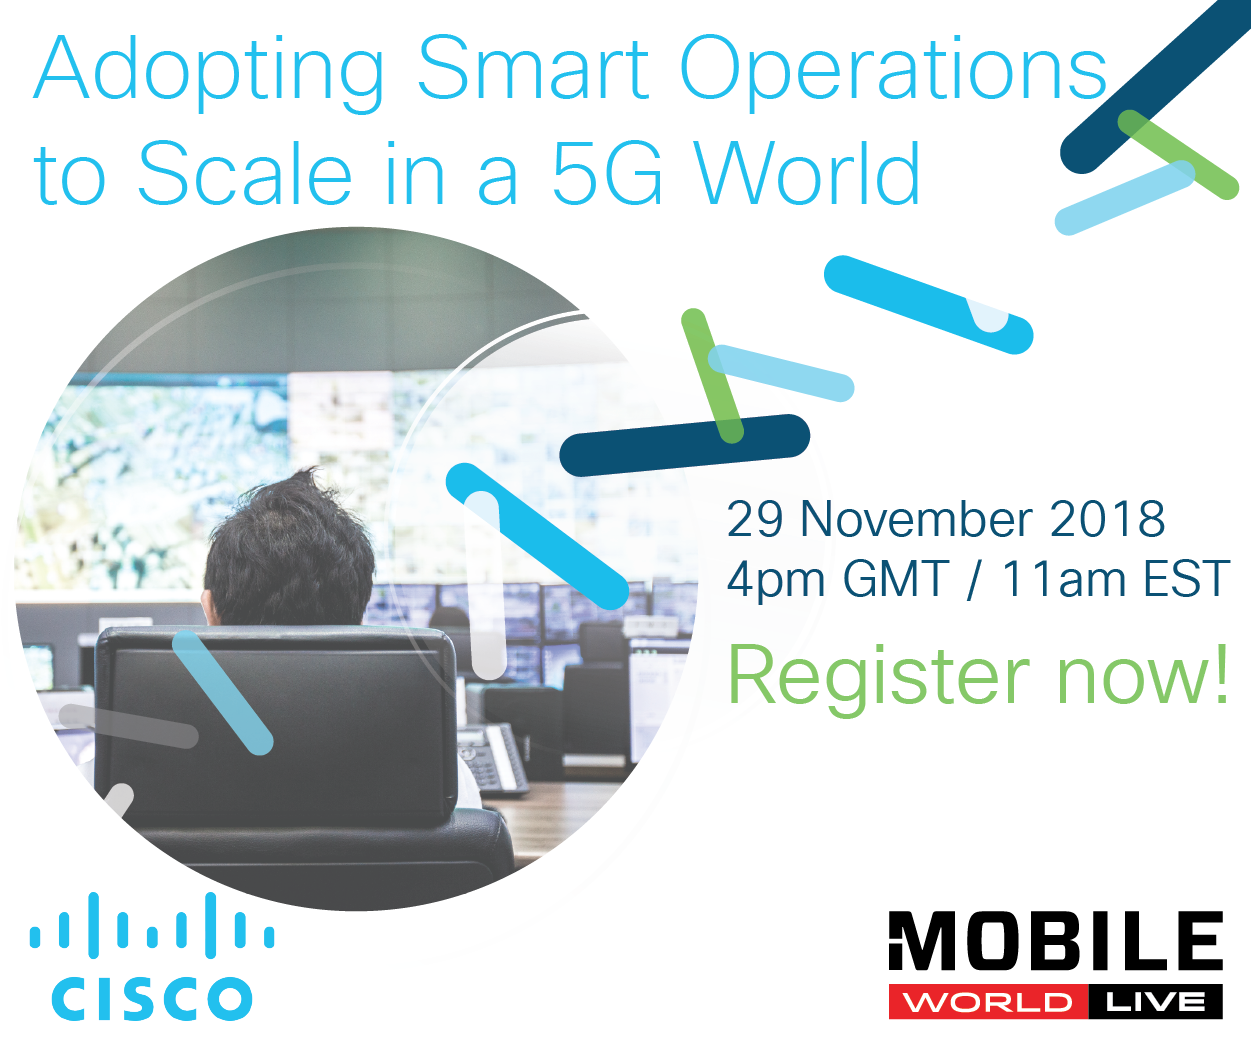 Adopting Smart Operations to Scale in a 5G World